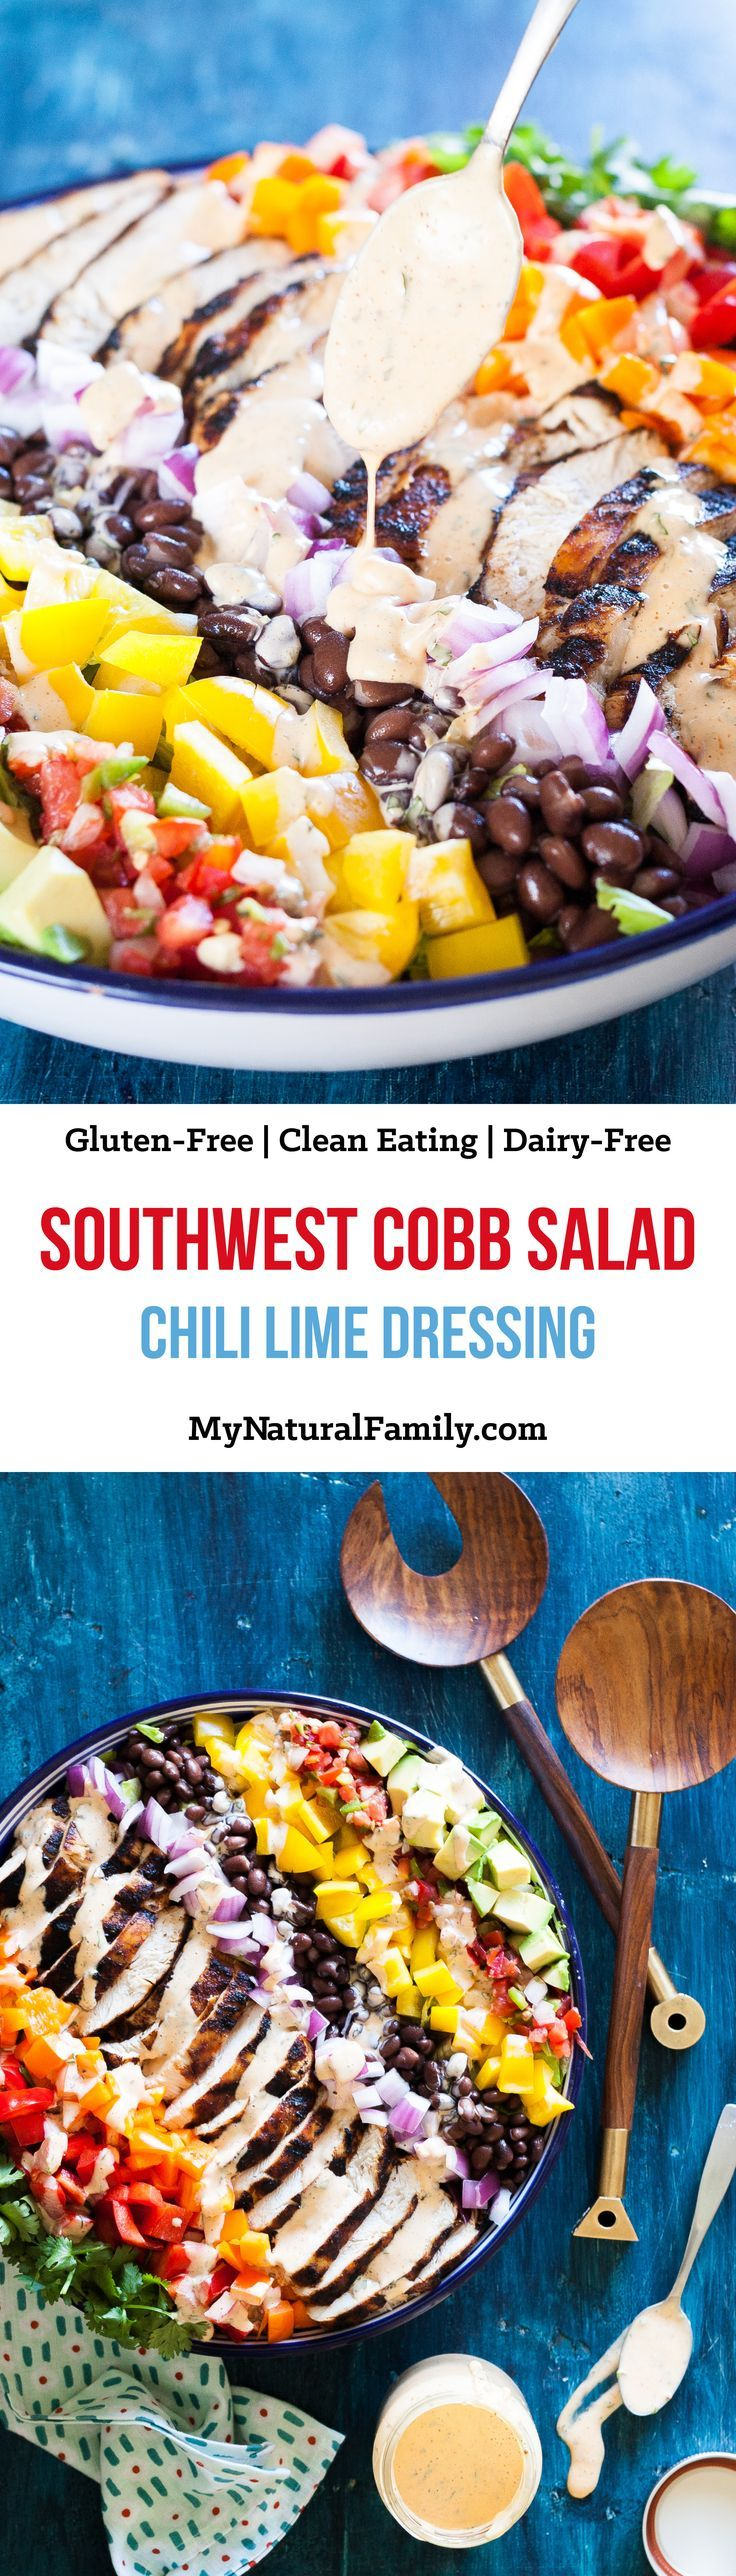 Smokey Chili Lime Dressing